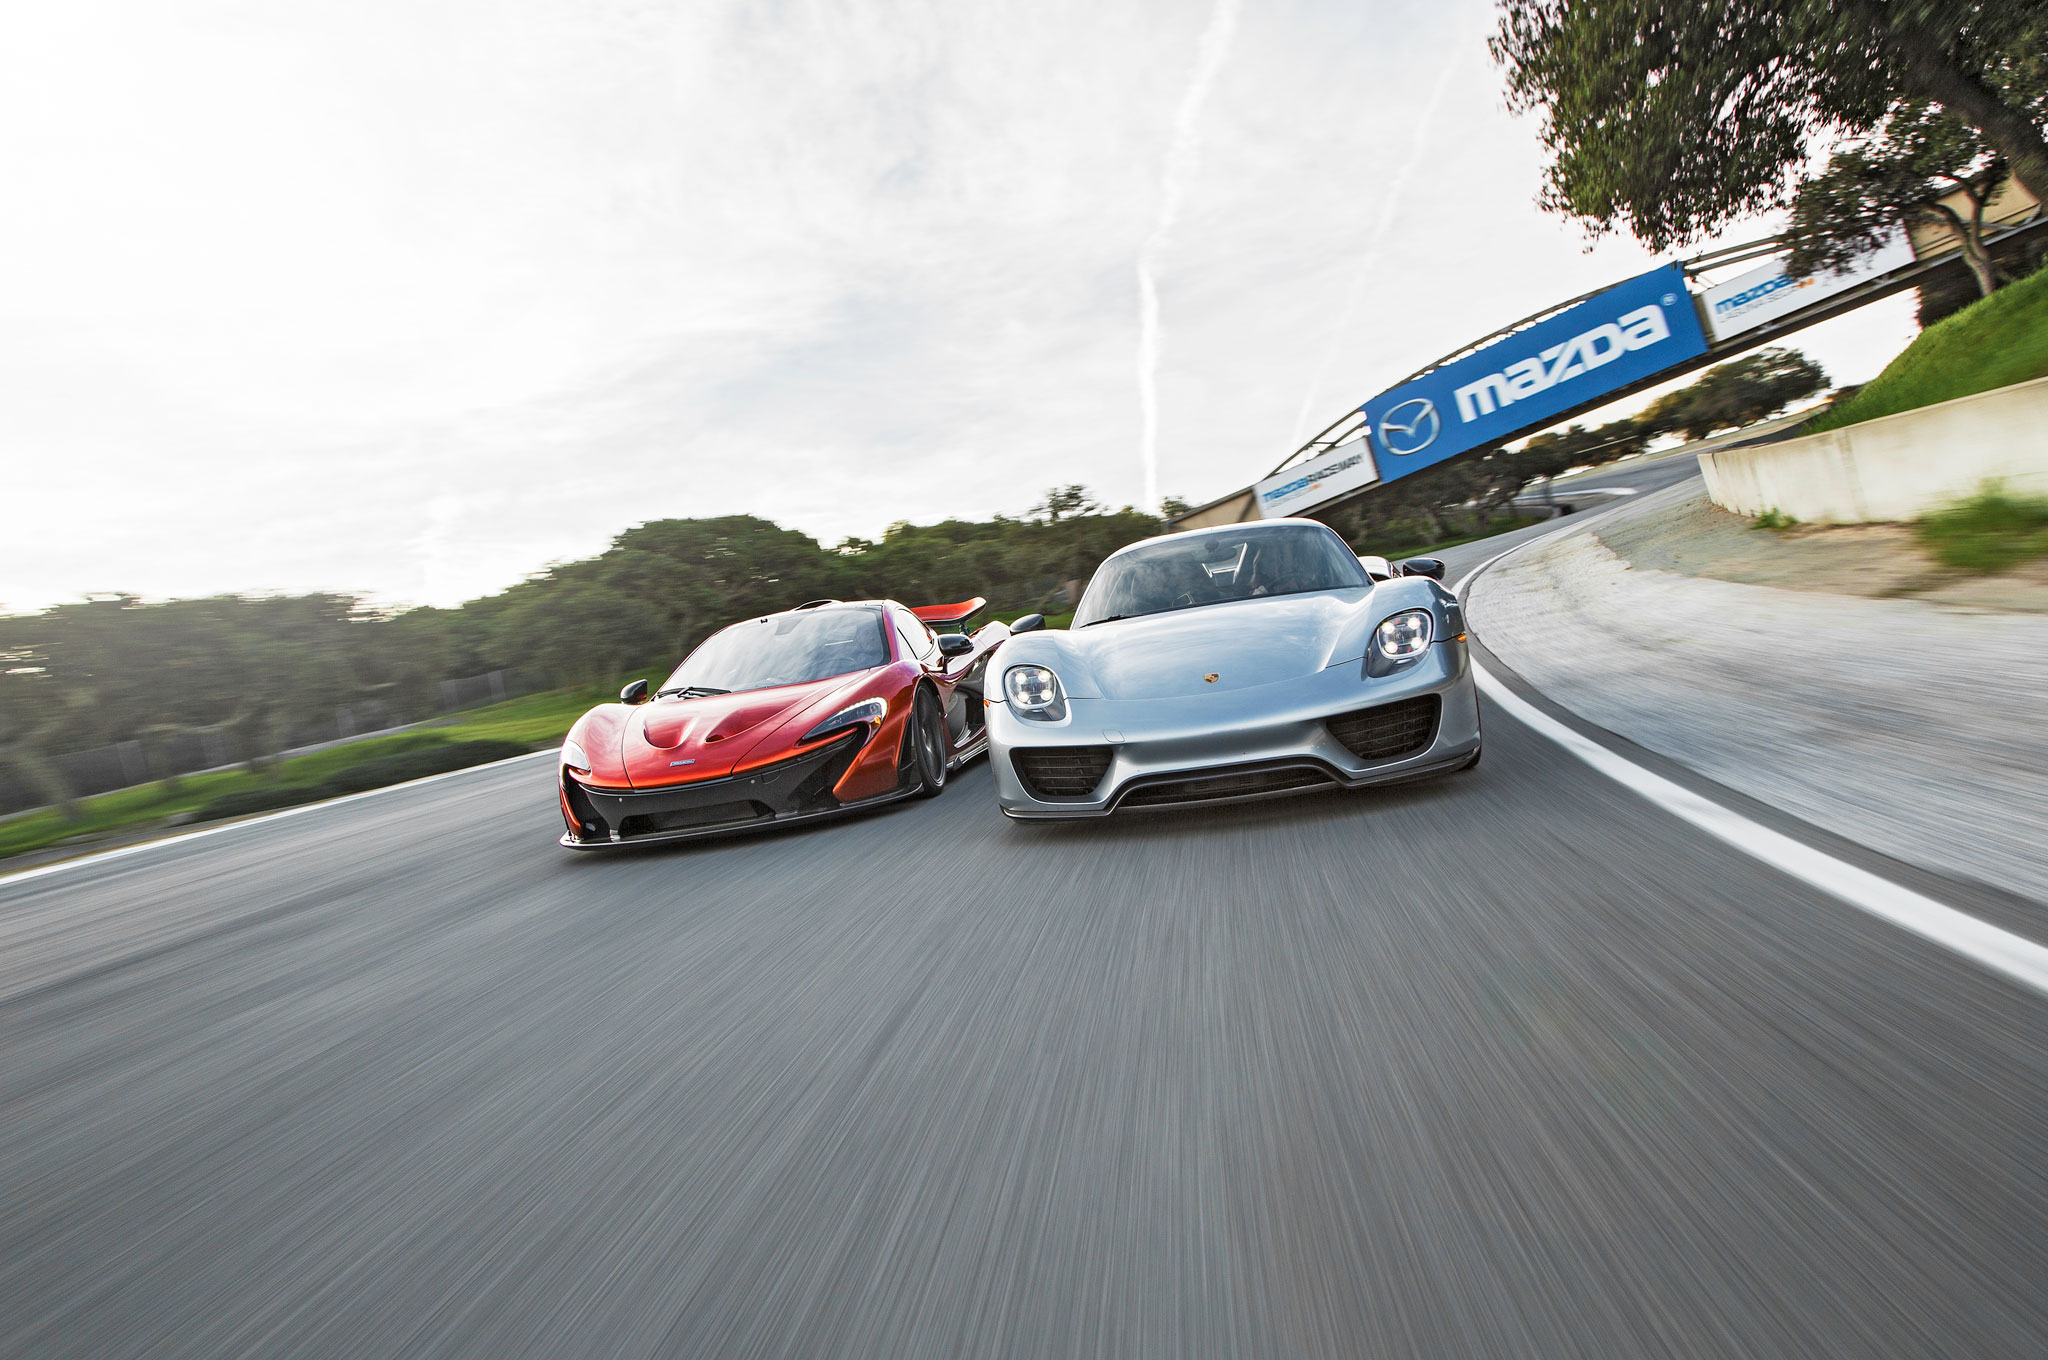 2015 McLaren P1 vs. 2015 Porsche 918 Spyder Comparison